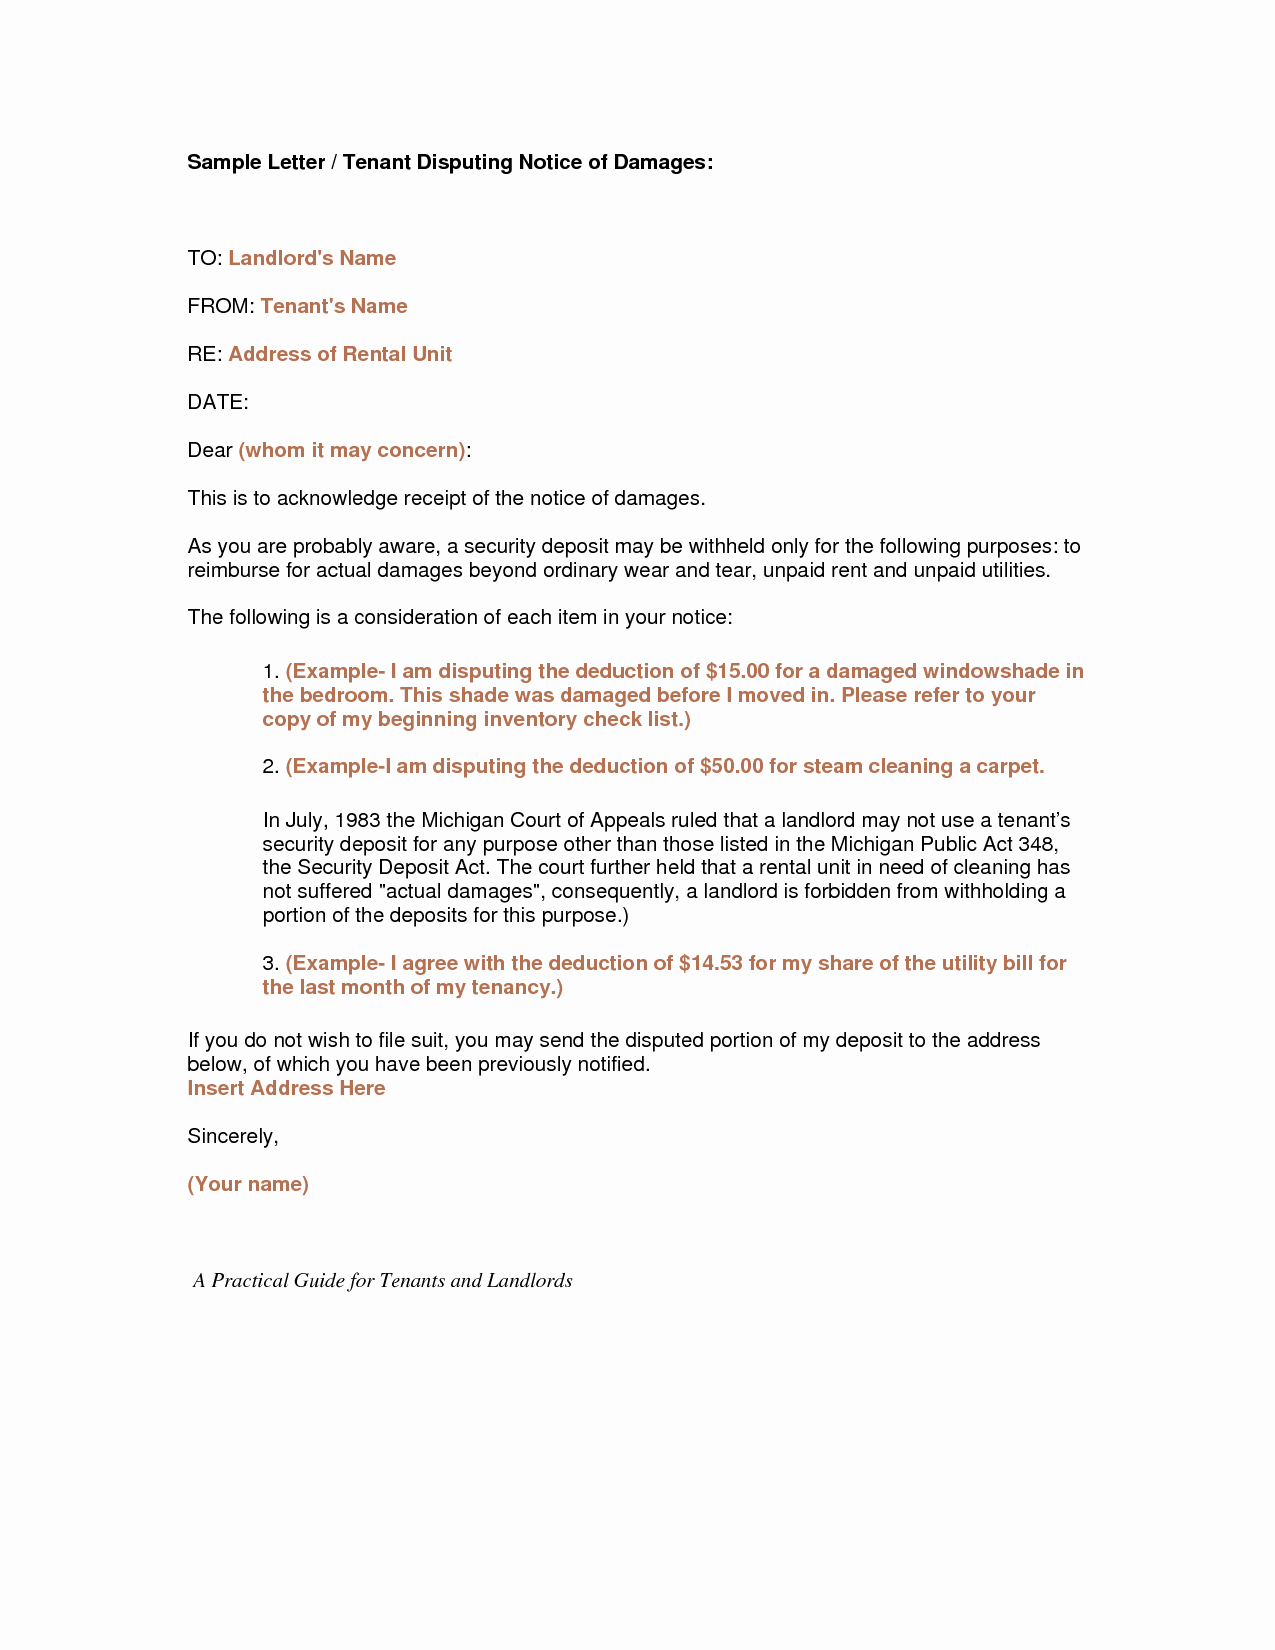 Sample Landlord Letters to Tenants Fresh Best S Of Tenant Notice Letter for Repairs Tenant